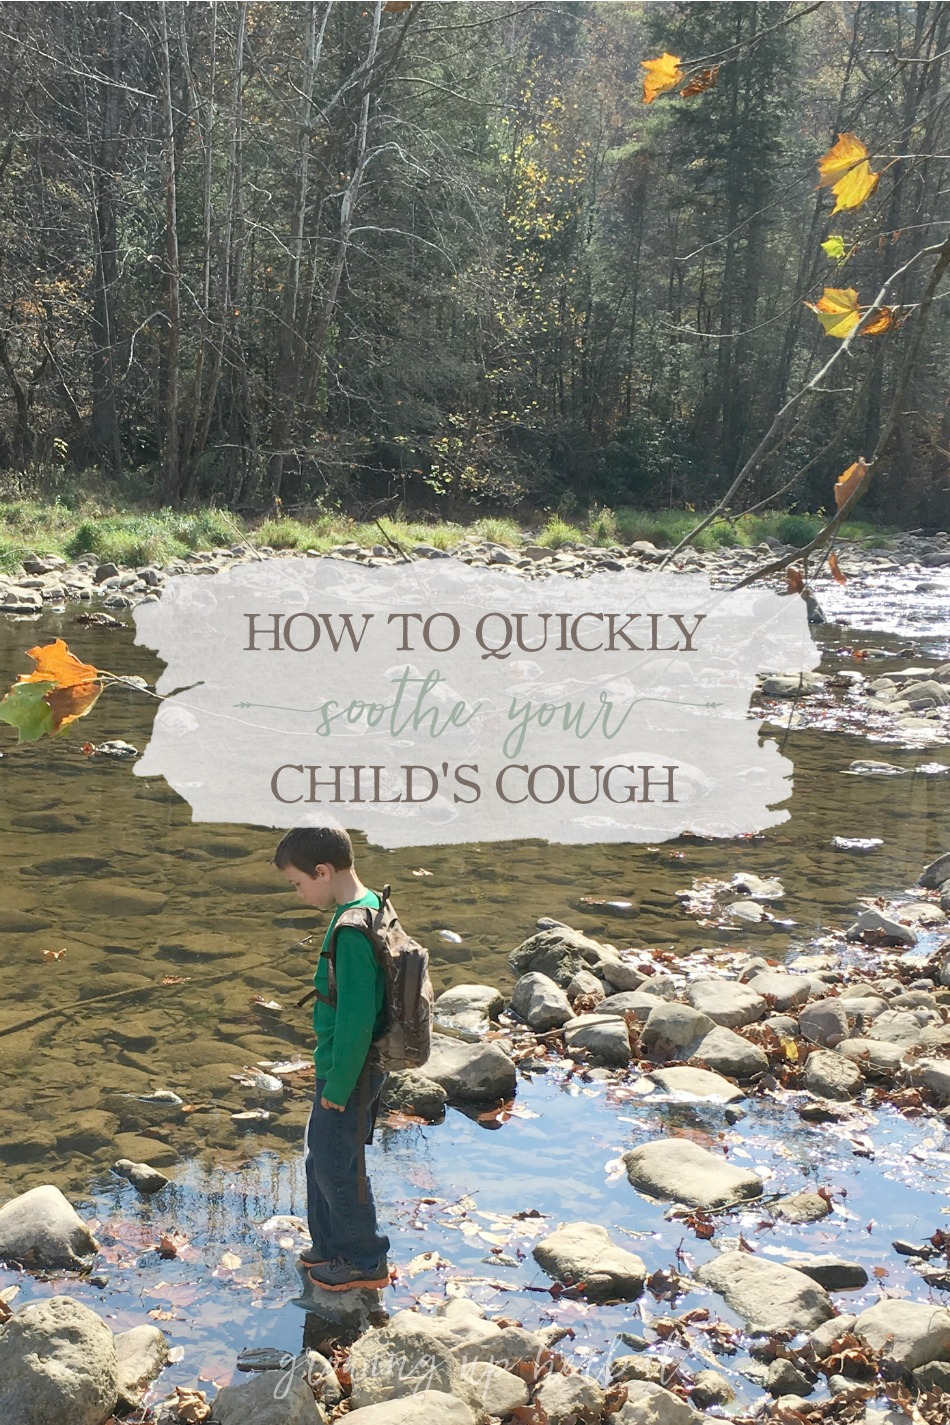 How To Quickly Soothe Your Child's Cough – Without Using Over-The-Counter Cough Medications